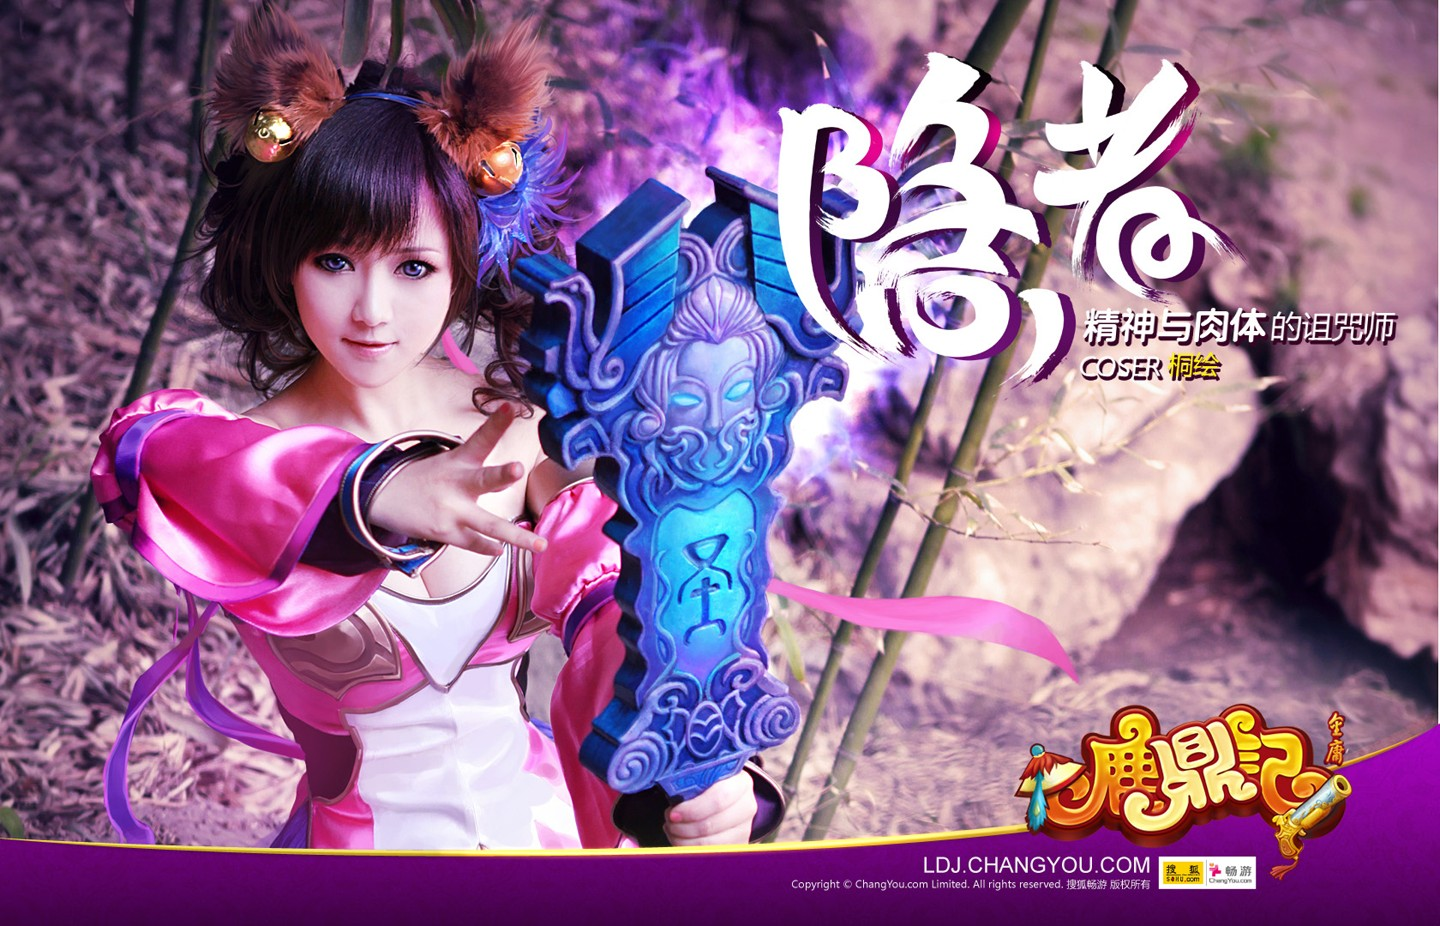 Deer Game Cosplay Official beautiful wallpaper 29887